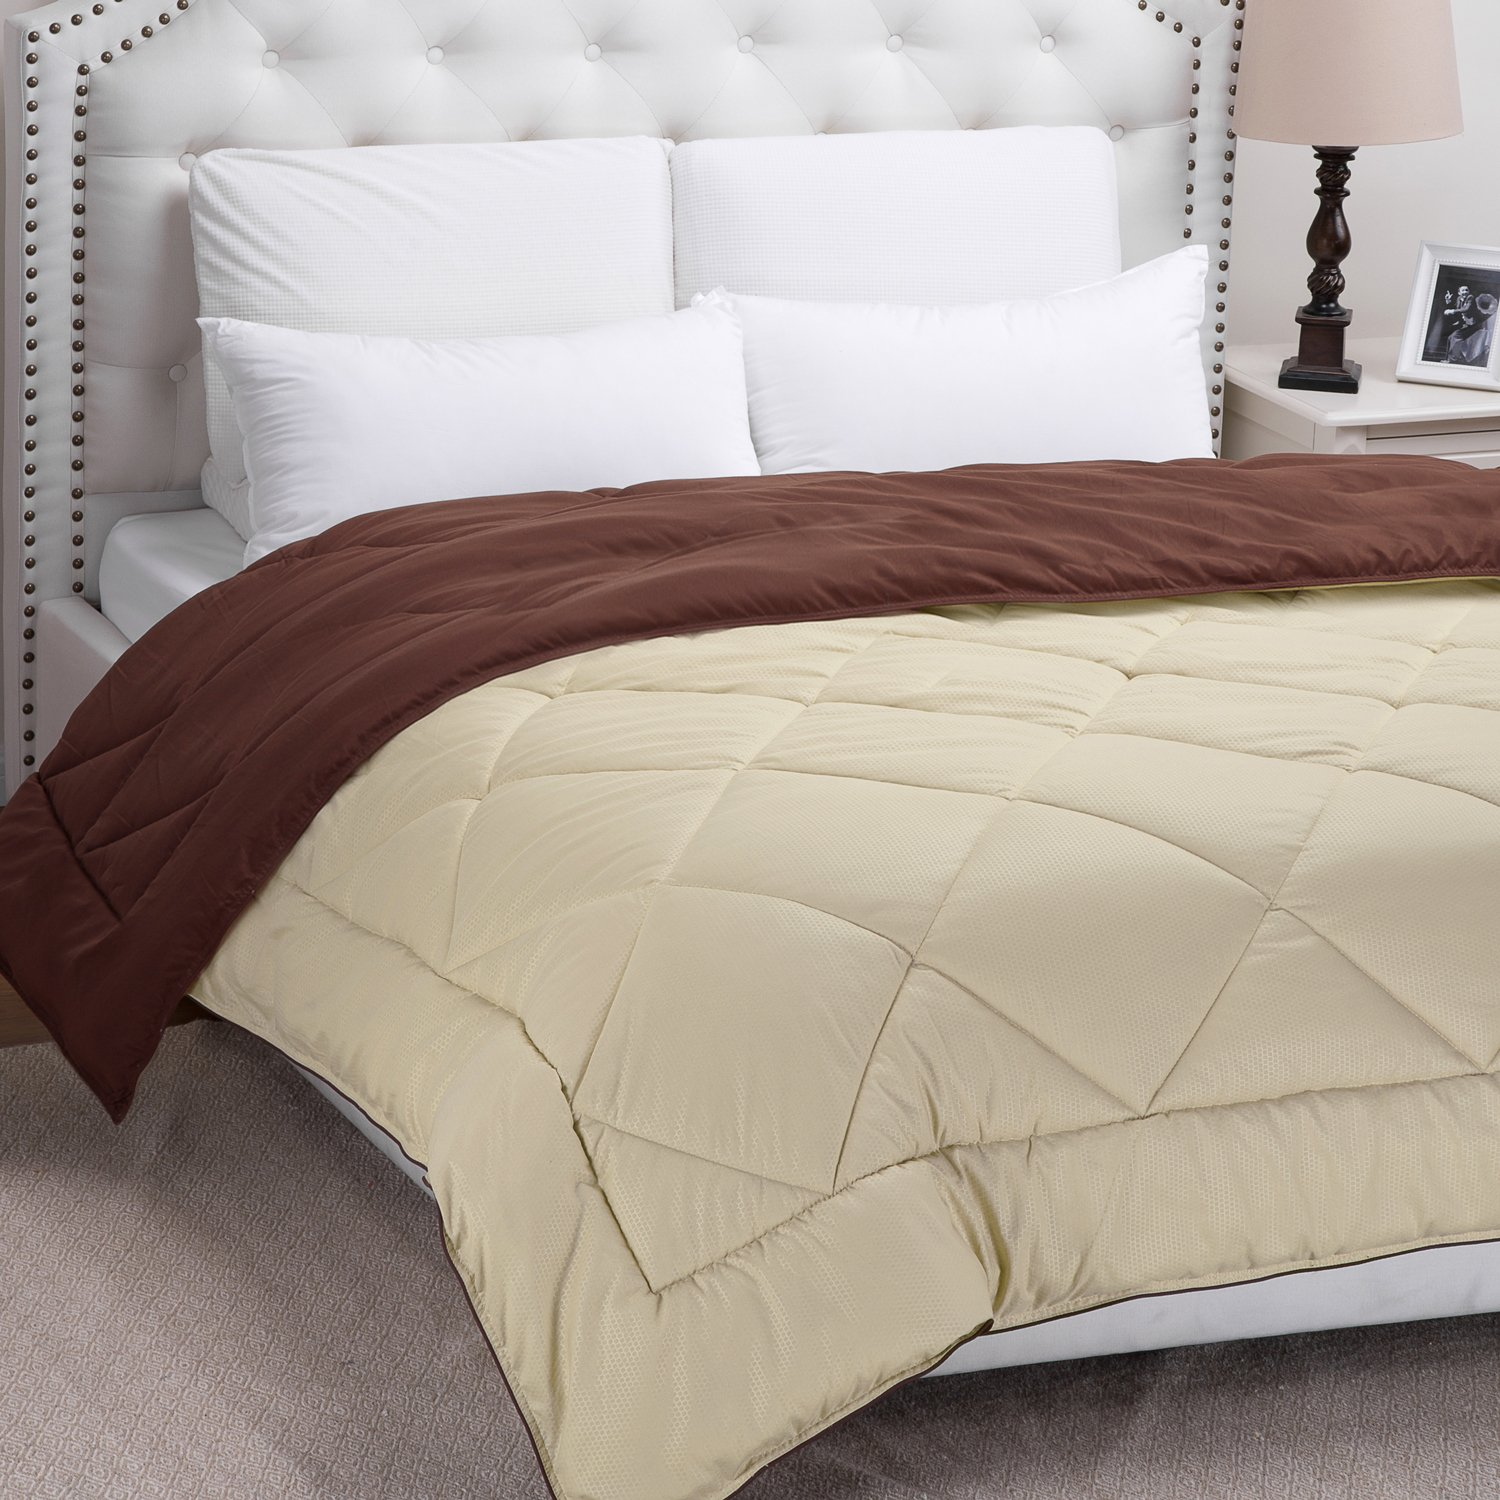 high beds down pinterest best quilts homegoodsgalore and oversized images twin blankets quality top super alternative fits on sets comforter pillow bedding grey